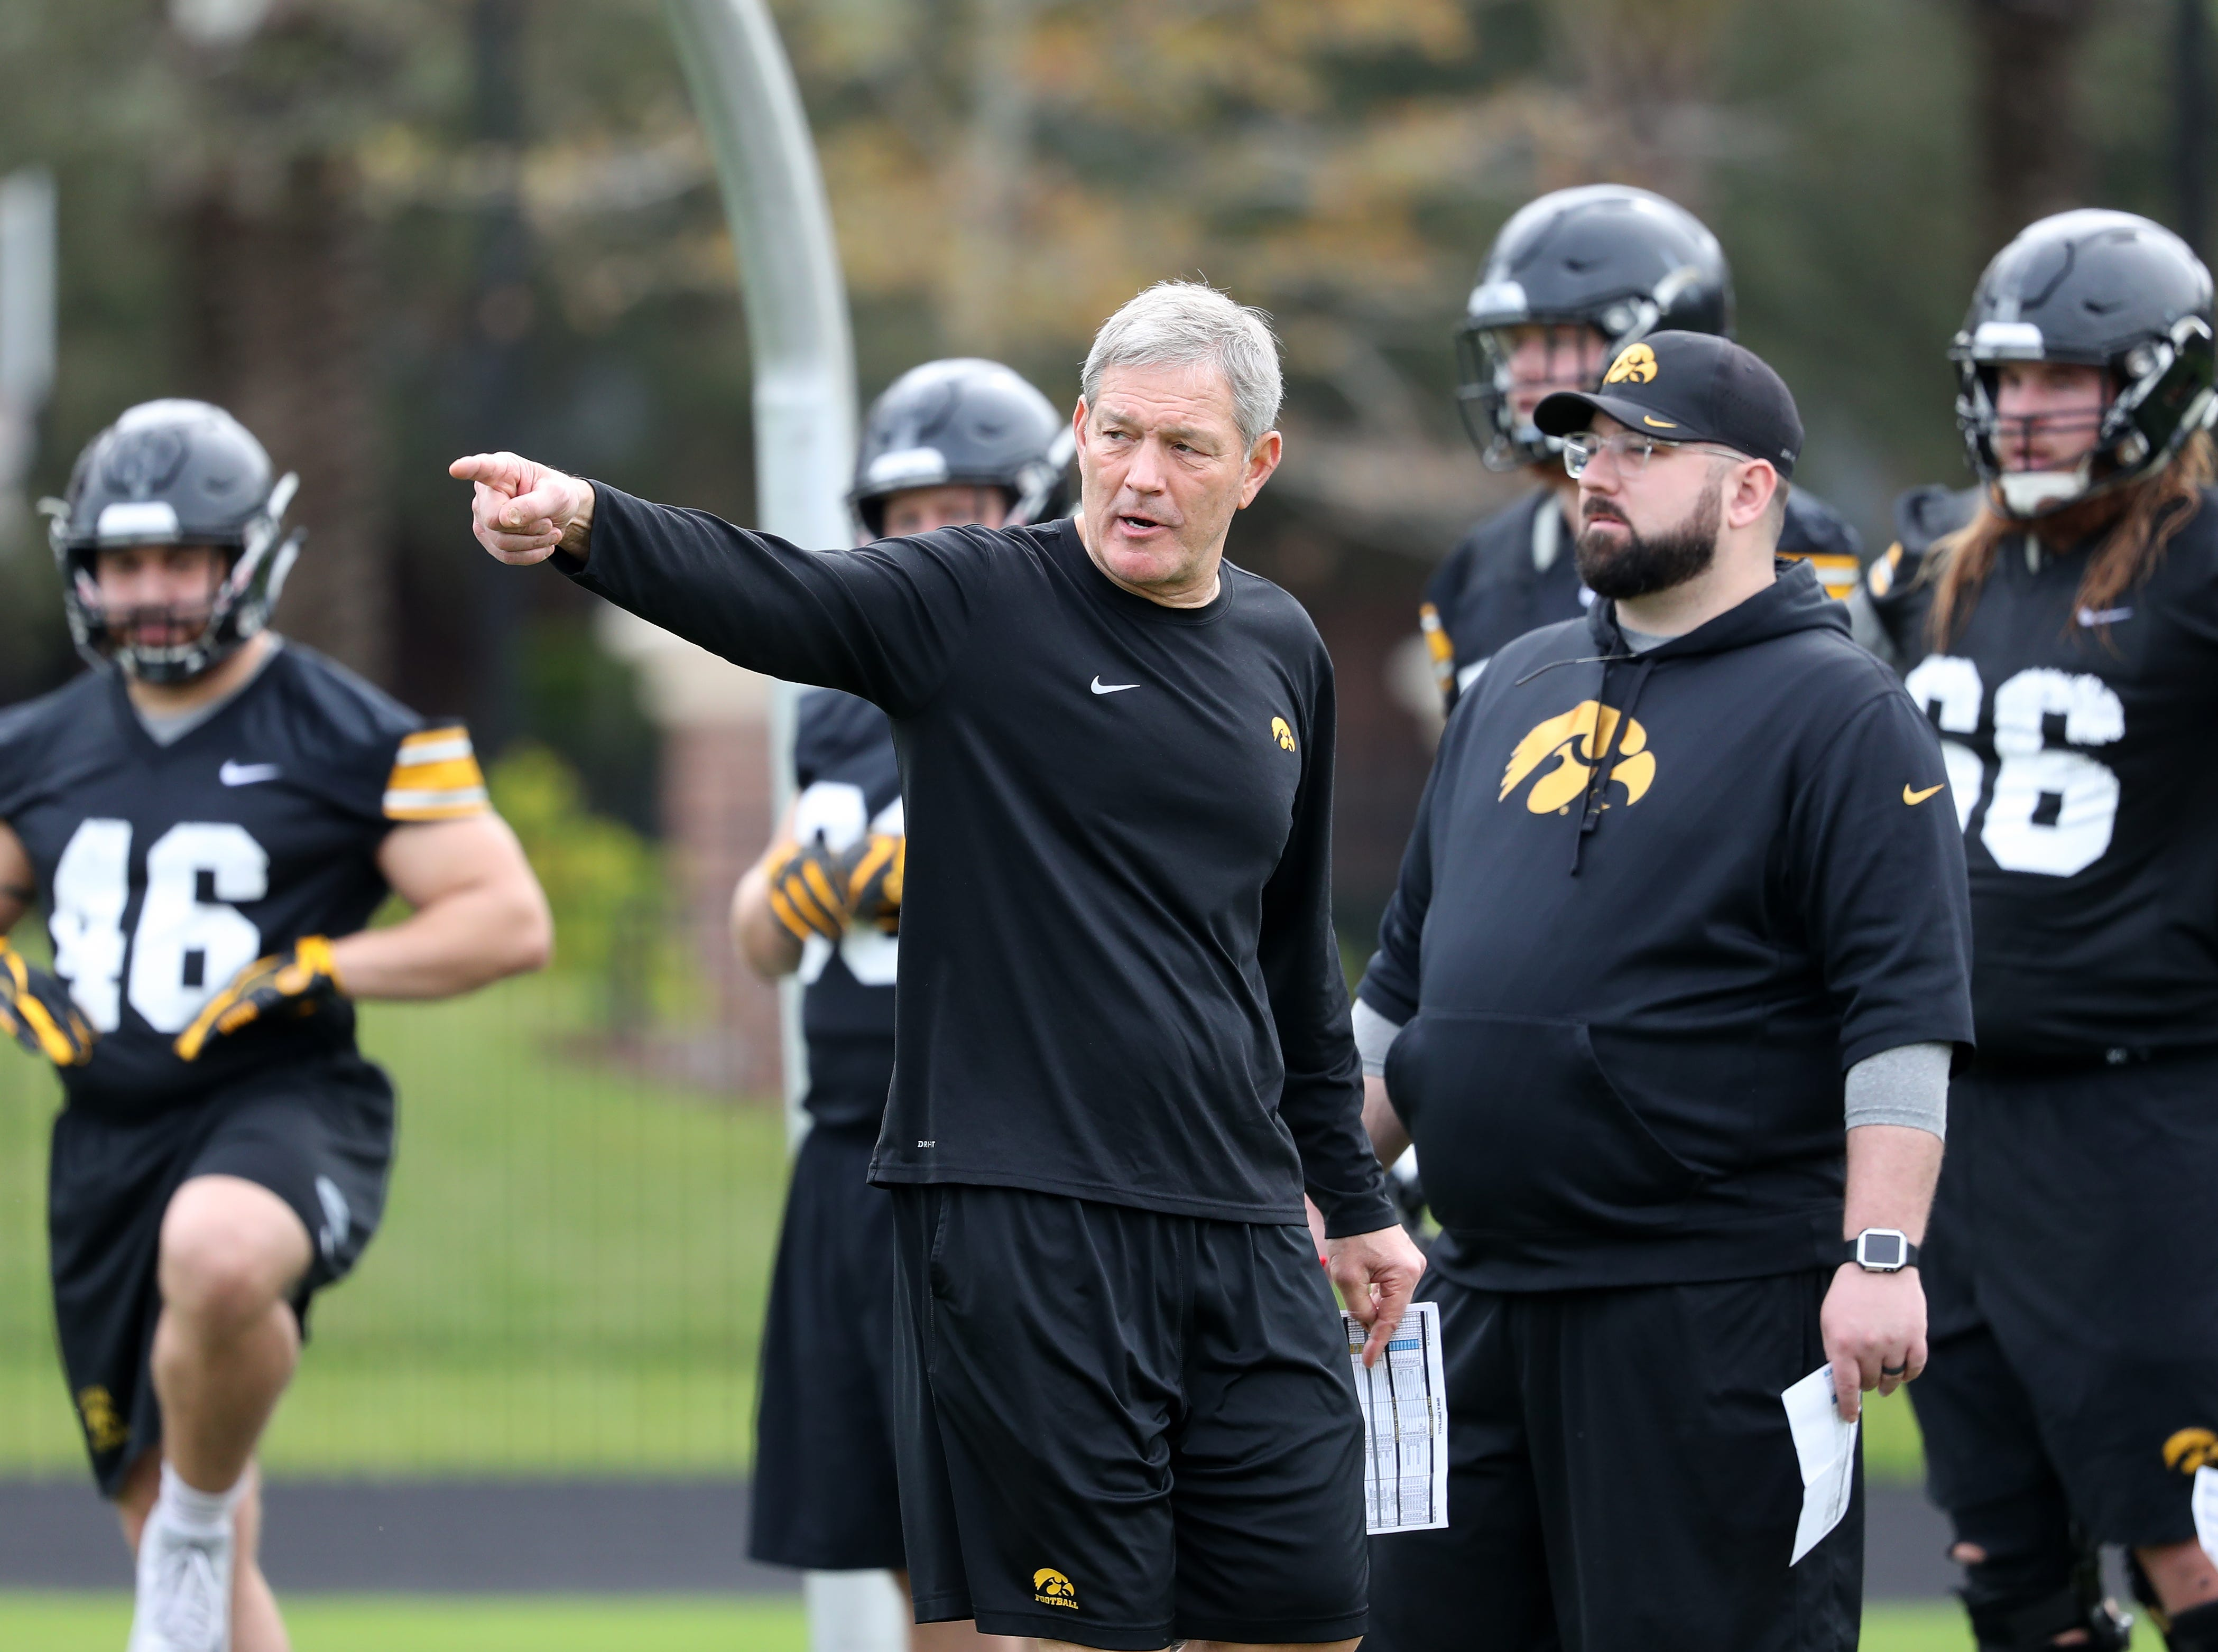 Iowa Hawkeyes head coach Kirk Ferentz during the team's first Outback Bowl Practice in Florida Thursday, December 27, 2018 at Tampa University.